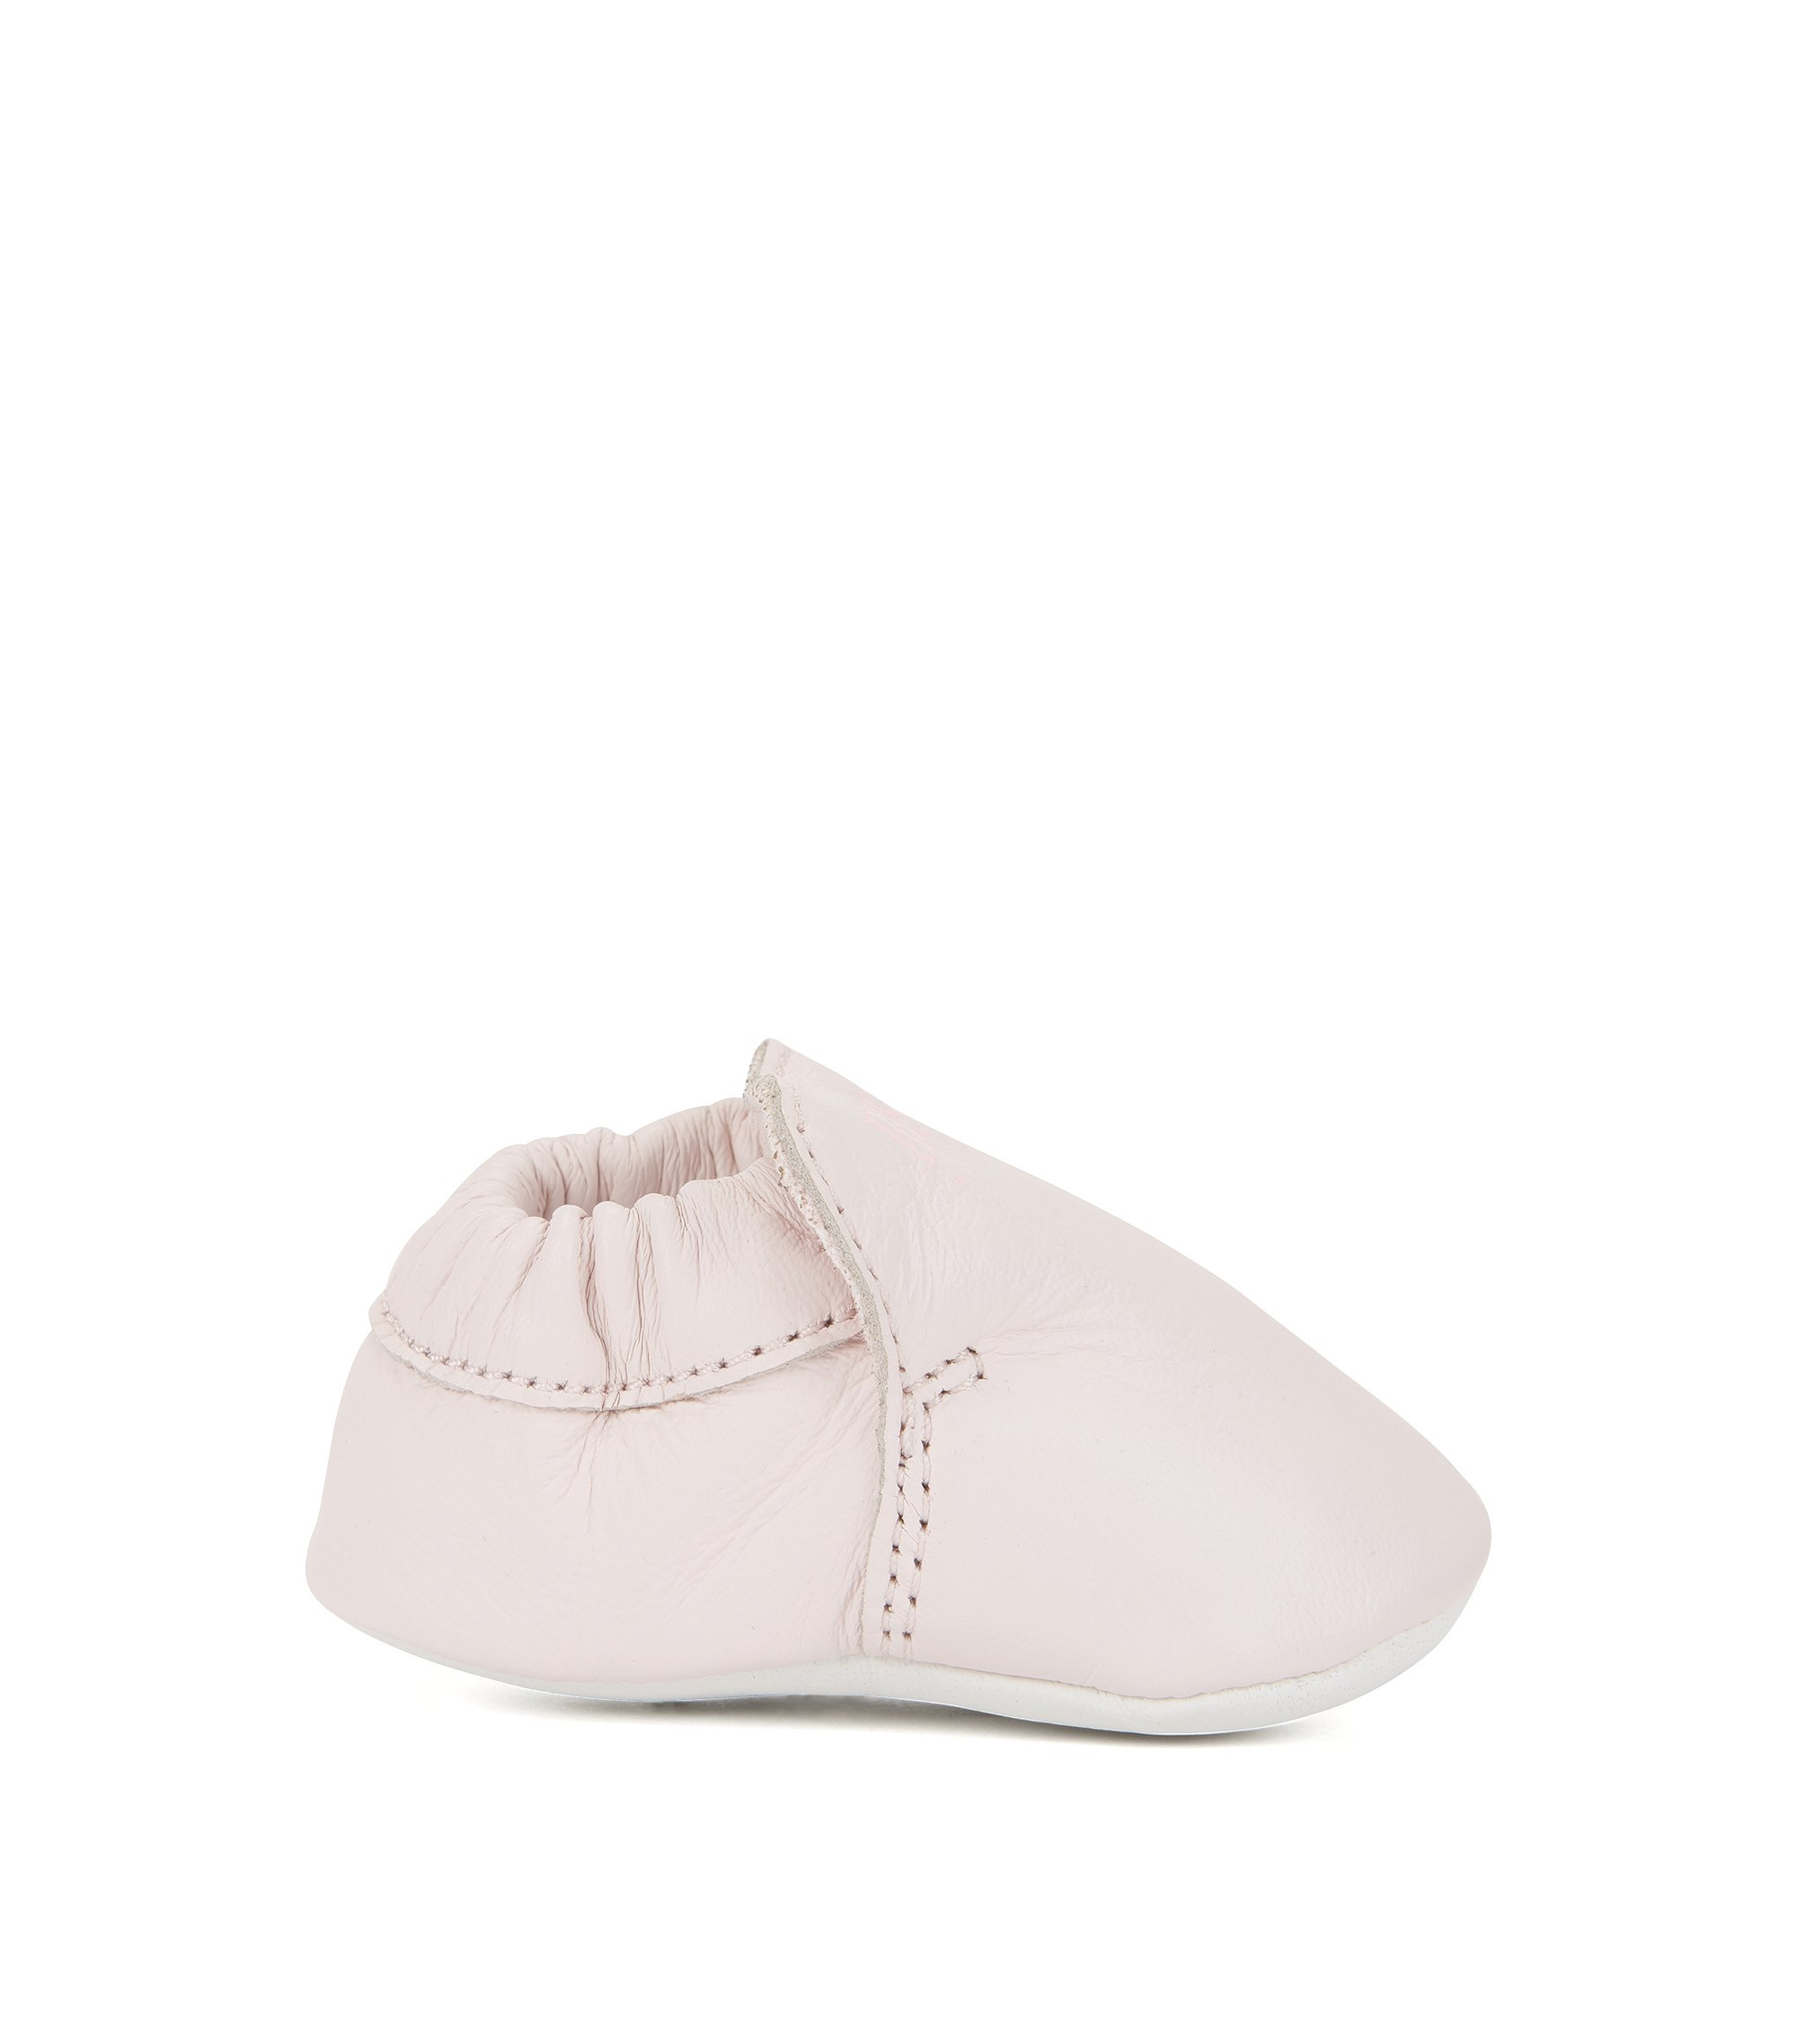 Baby booties in supple leather, light pink